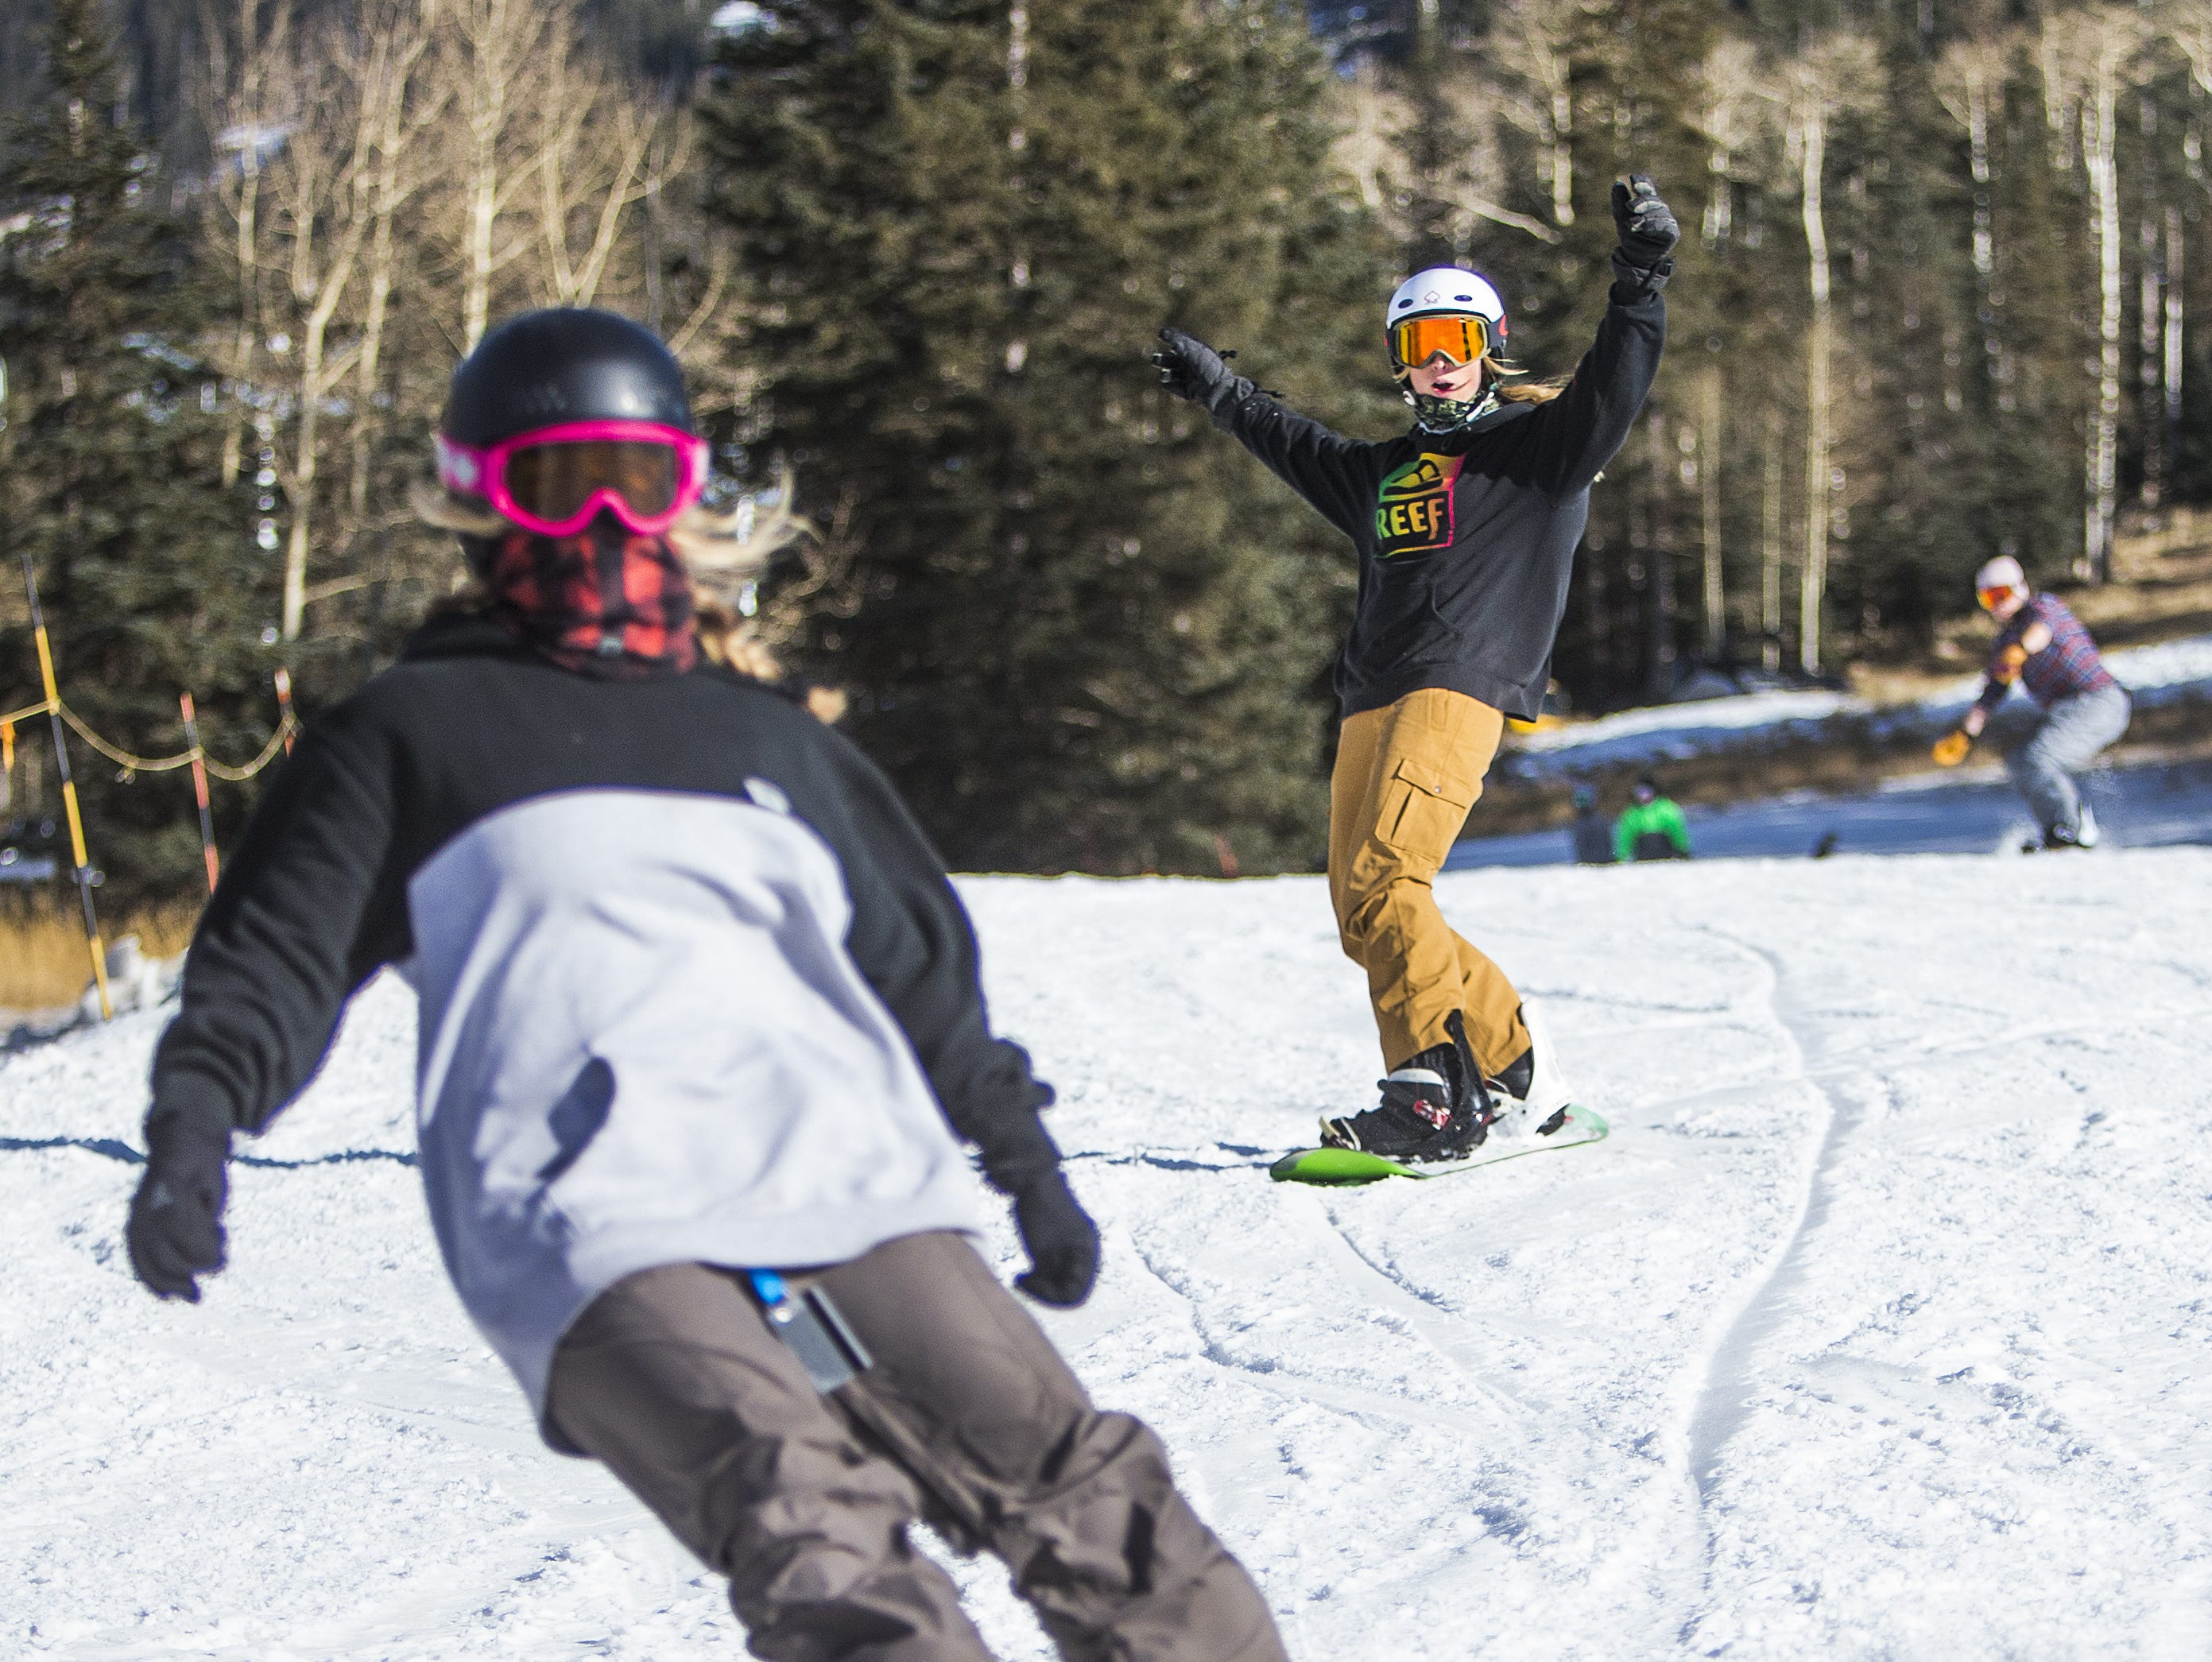 Lindsey Glastetter (left), 19, of Orange, California, and Nikki Young, 19, of San Jose, California, finish a run at Arizona Snowbowl in Flagstaff Nov. 28, 2018.  Both are Northern Arizona University students.